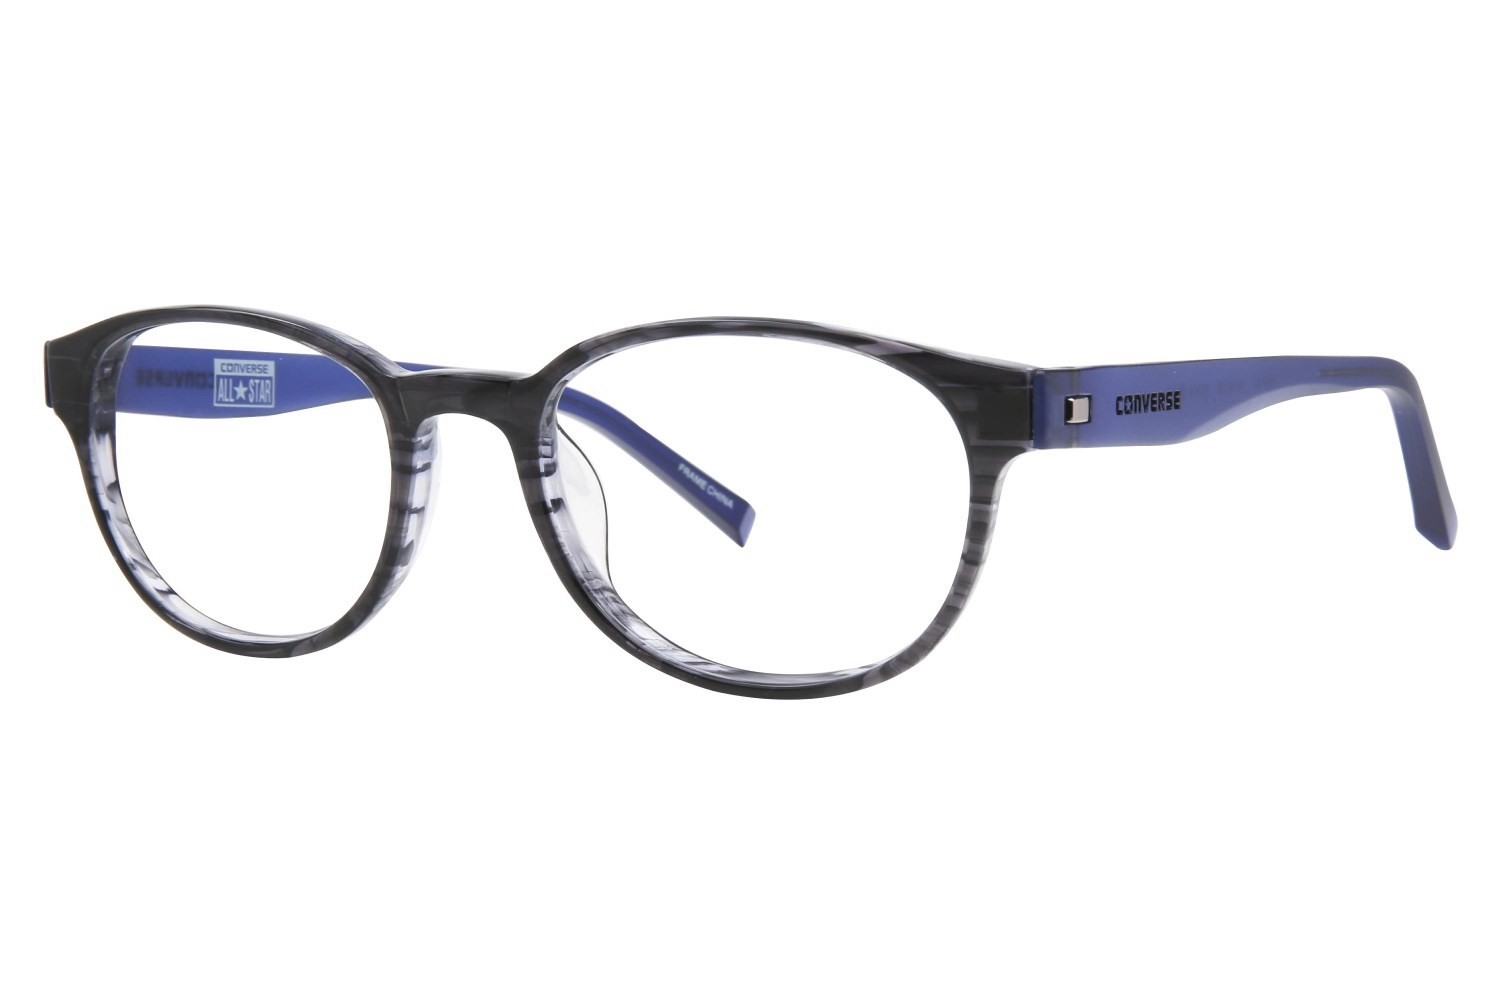 f077f6ab99 Review Converse Q014 UF Prescription Eyeglasses – Review Contact ...